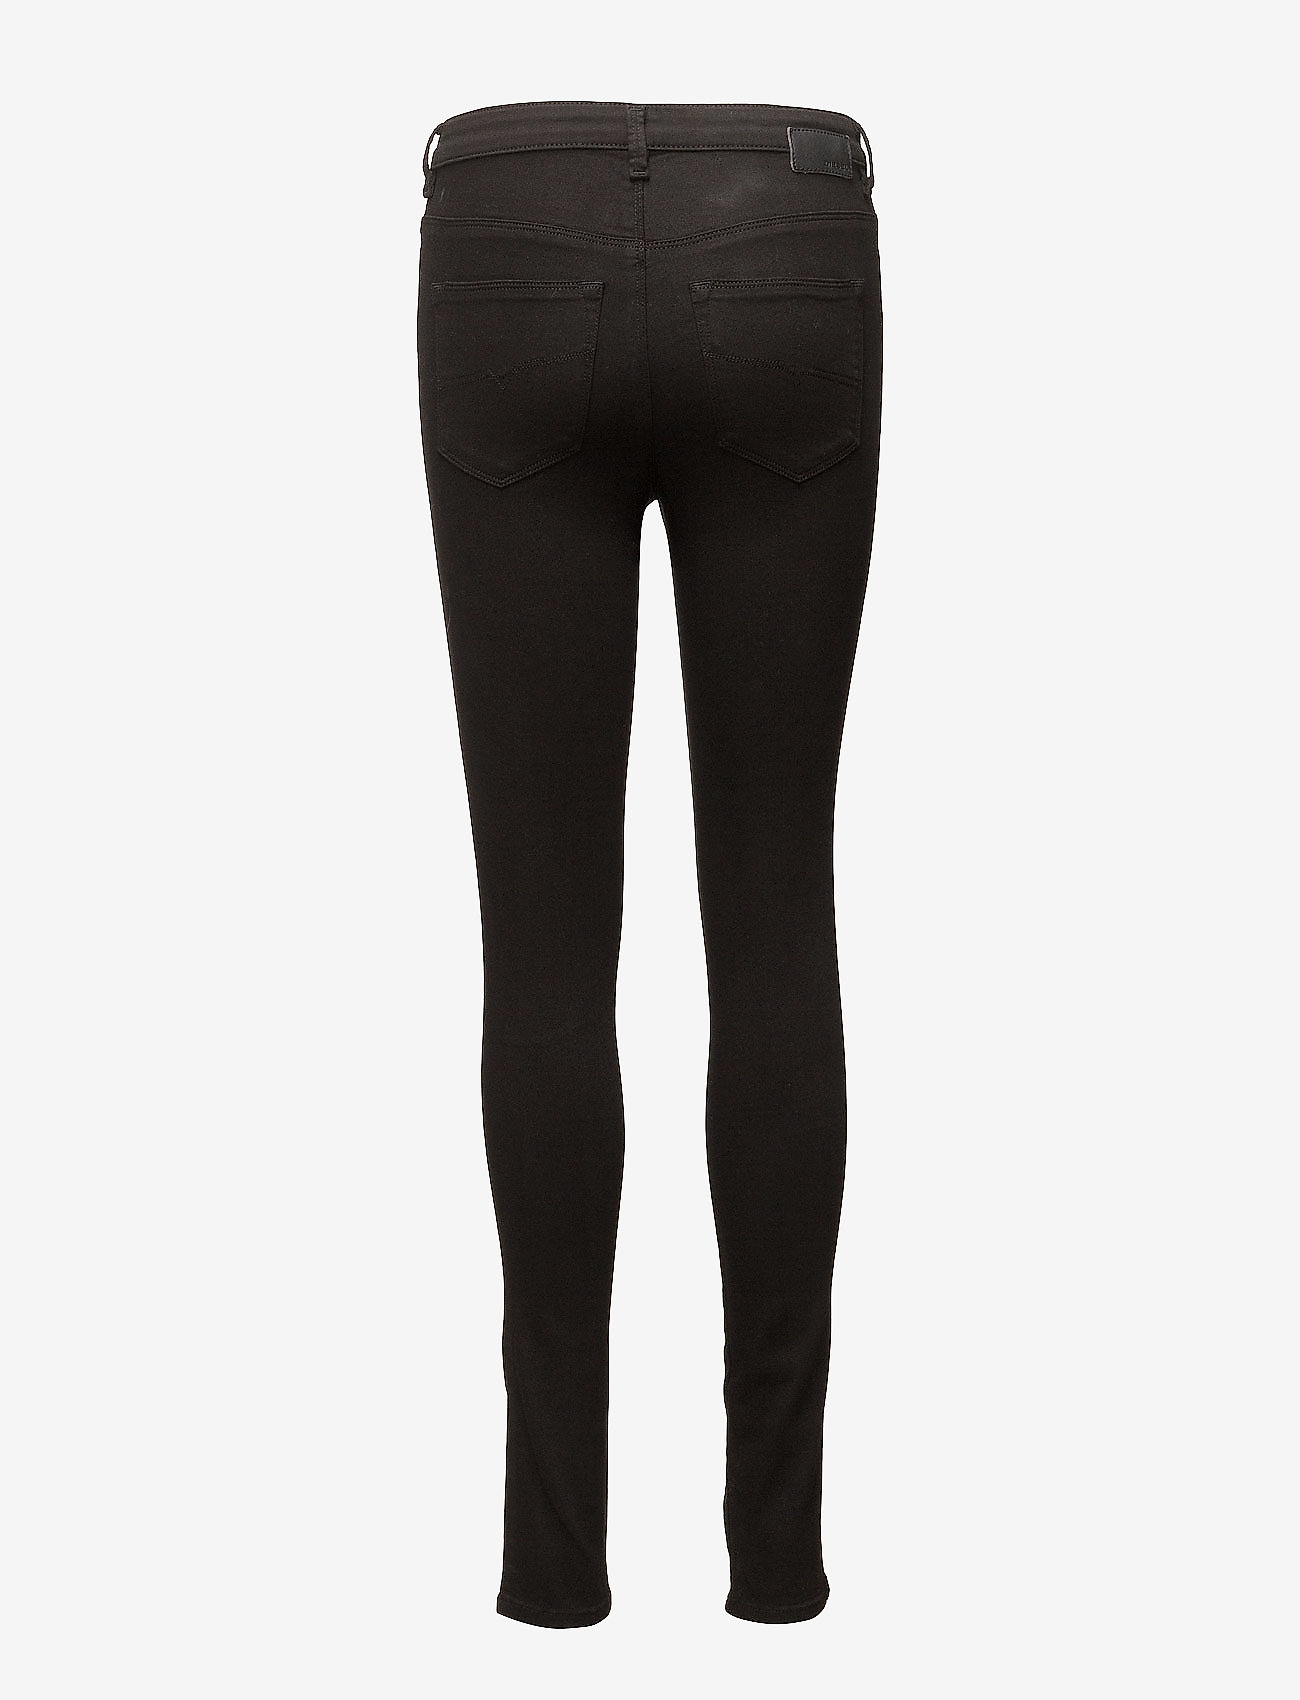 Diesel Women - SKINZEE-HIGH TROUSERS - skinny jeans - black/denim - 1